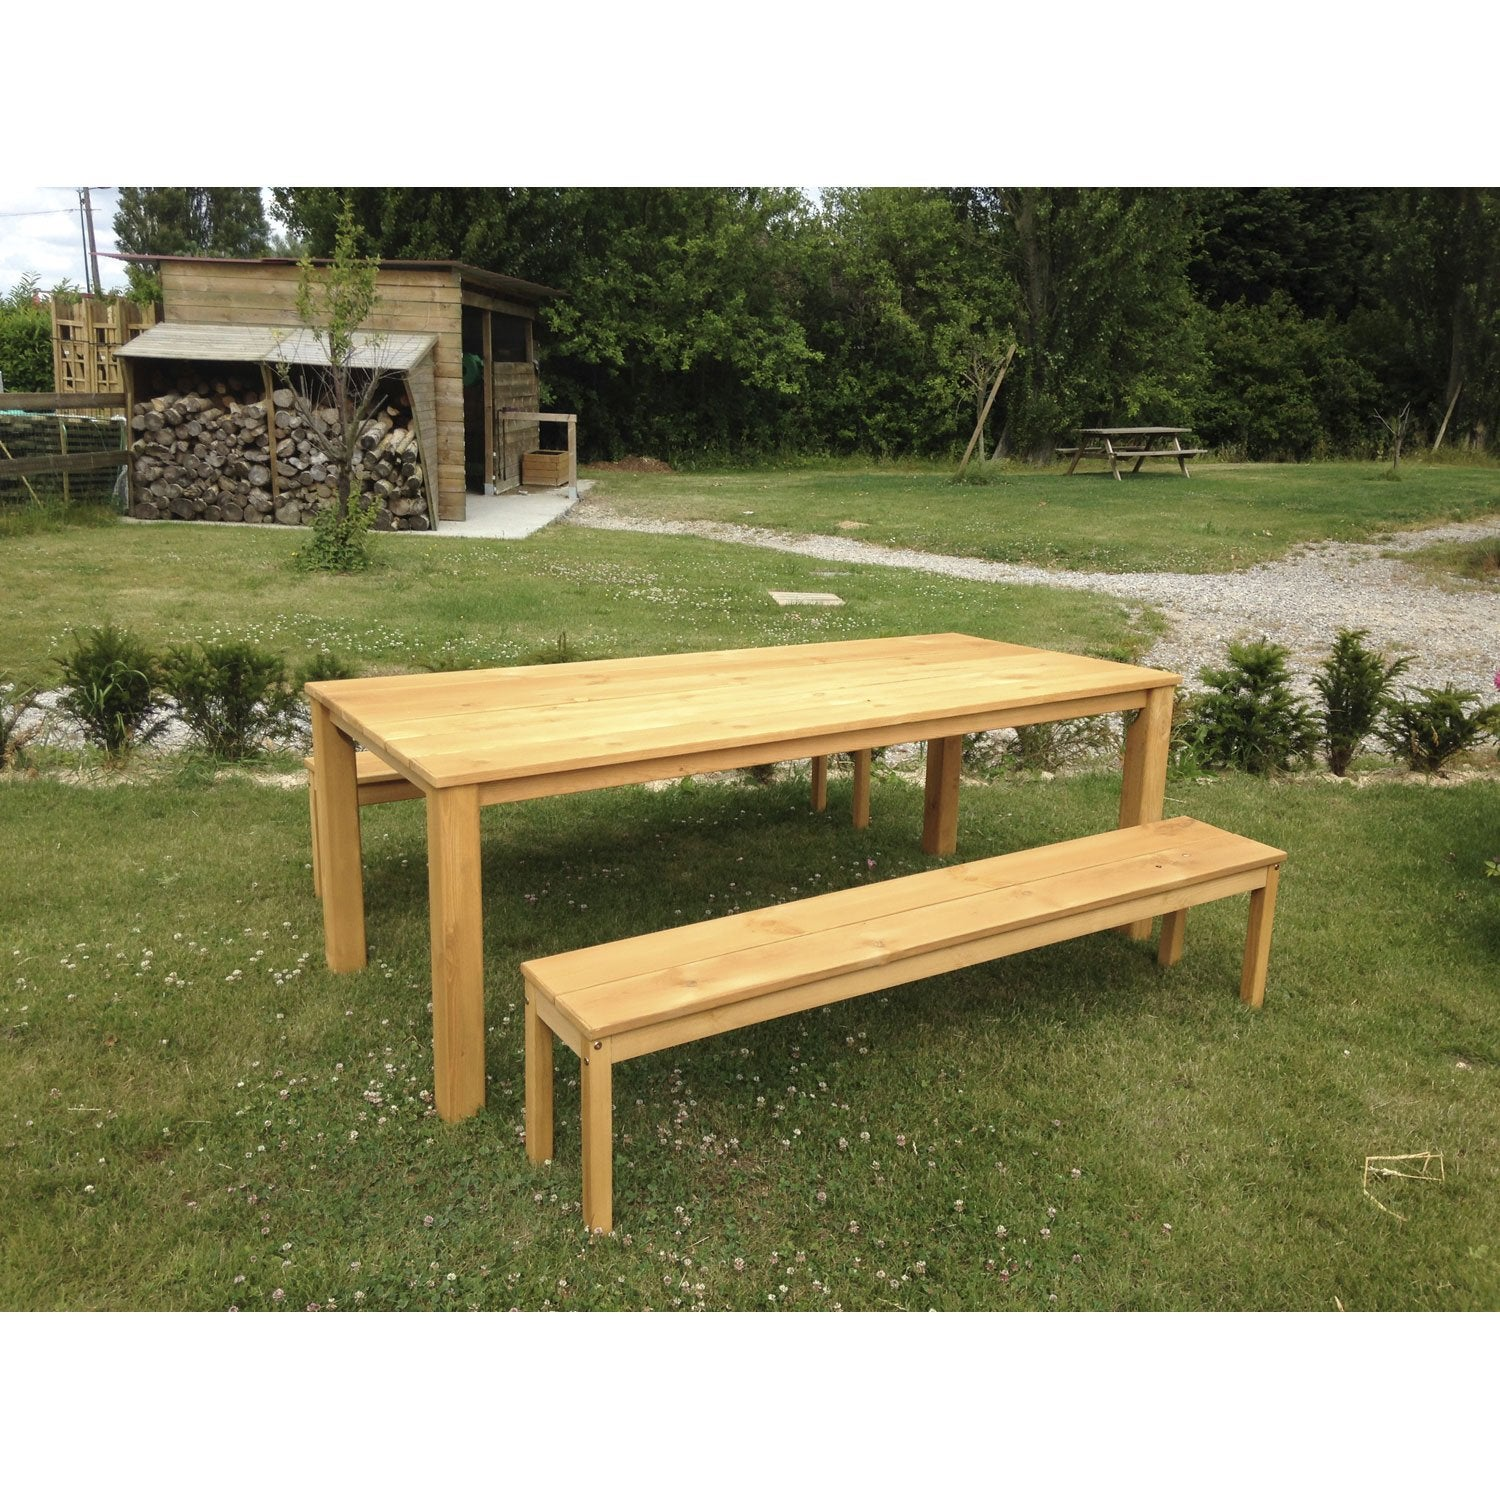 Salon de jardin set ferme bois ch ne vieilli 1 table 2 for Leroy merlin table jardin